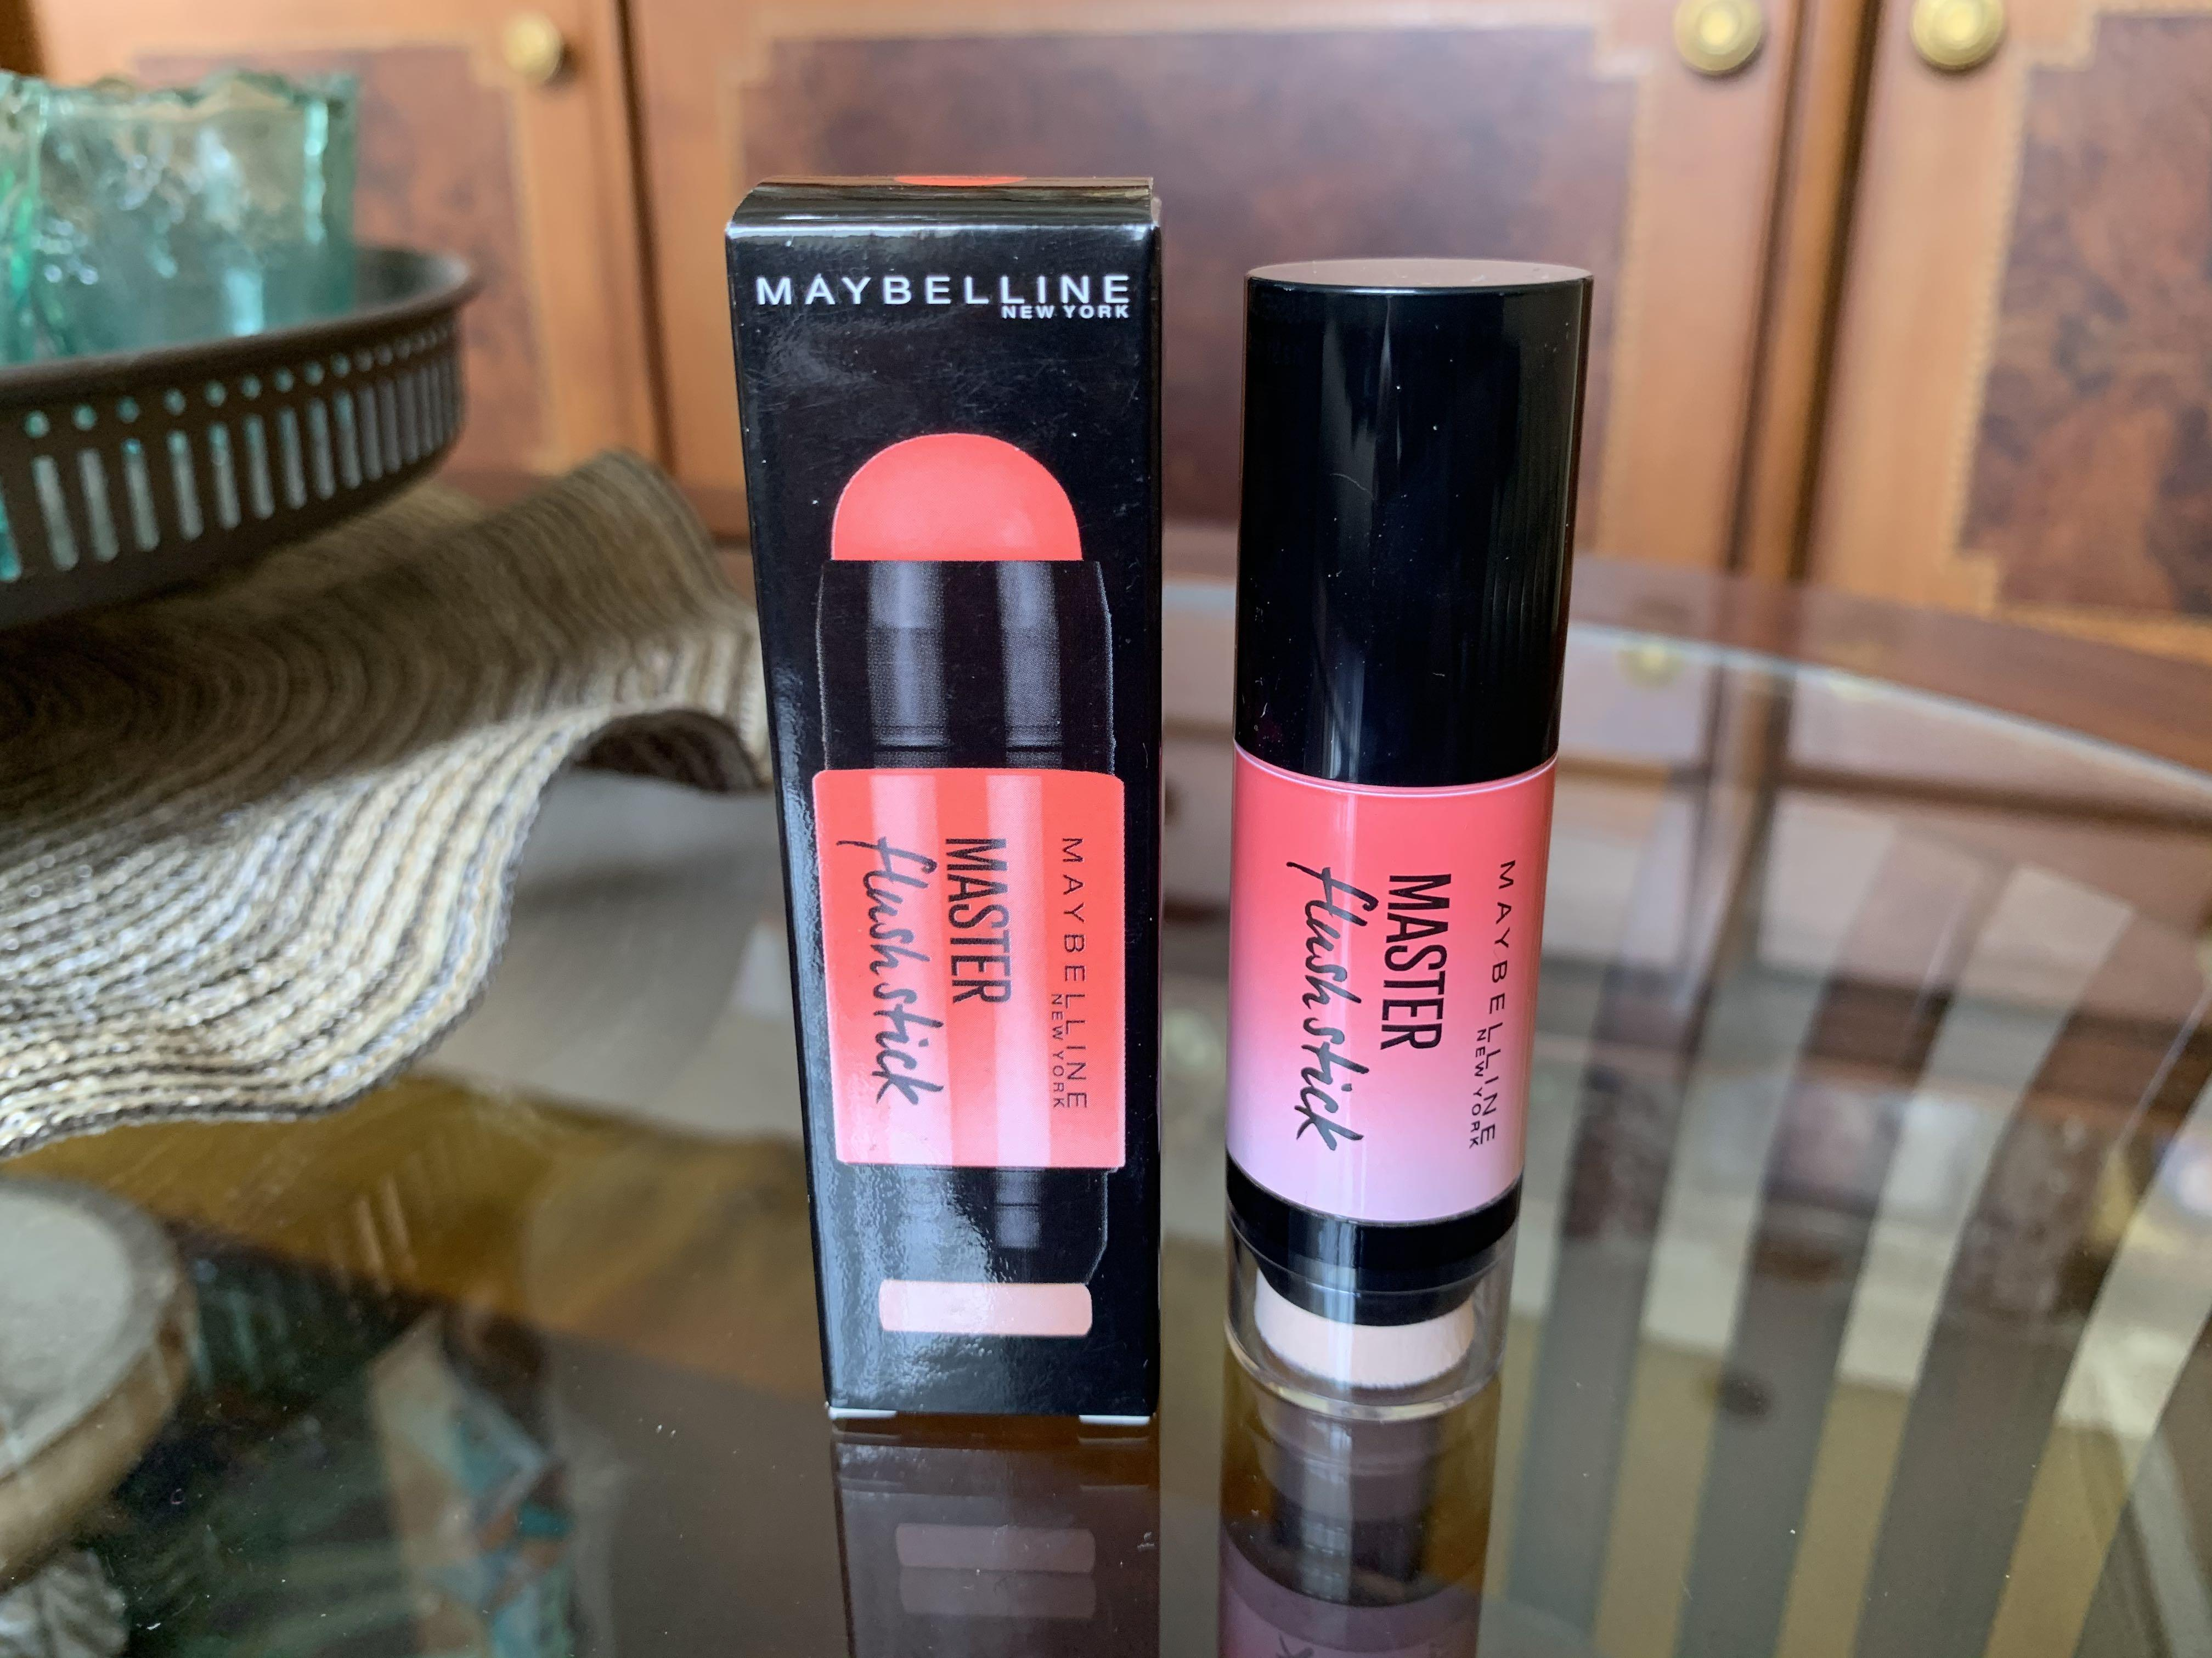 Maybelline Master Flush Stick